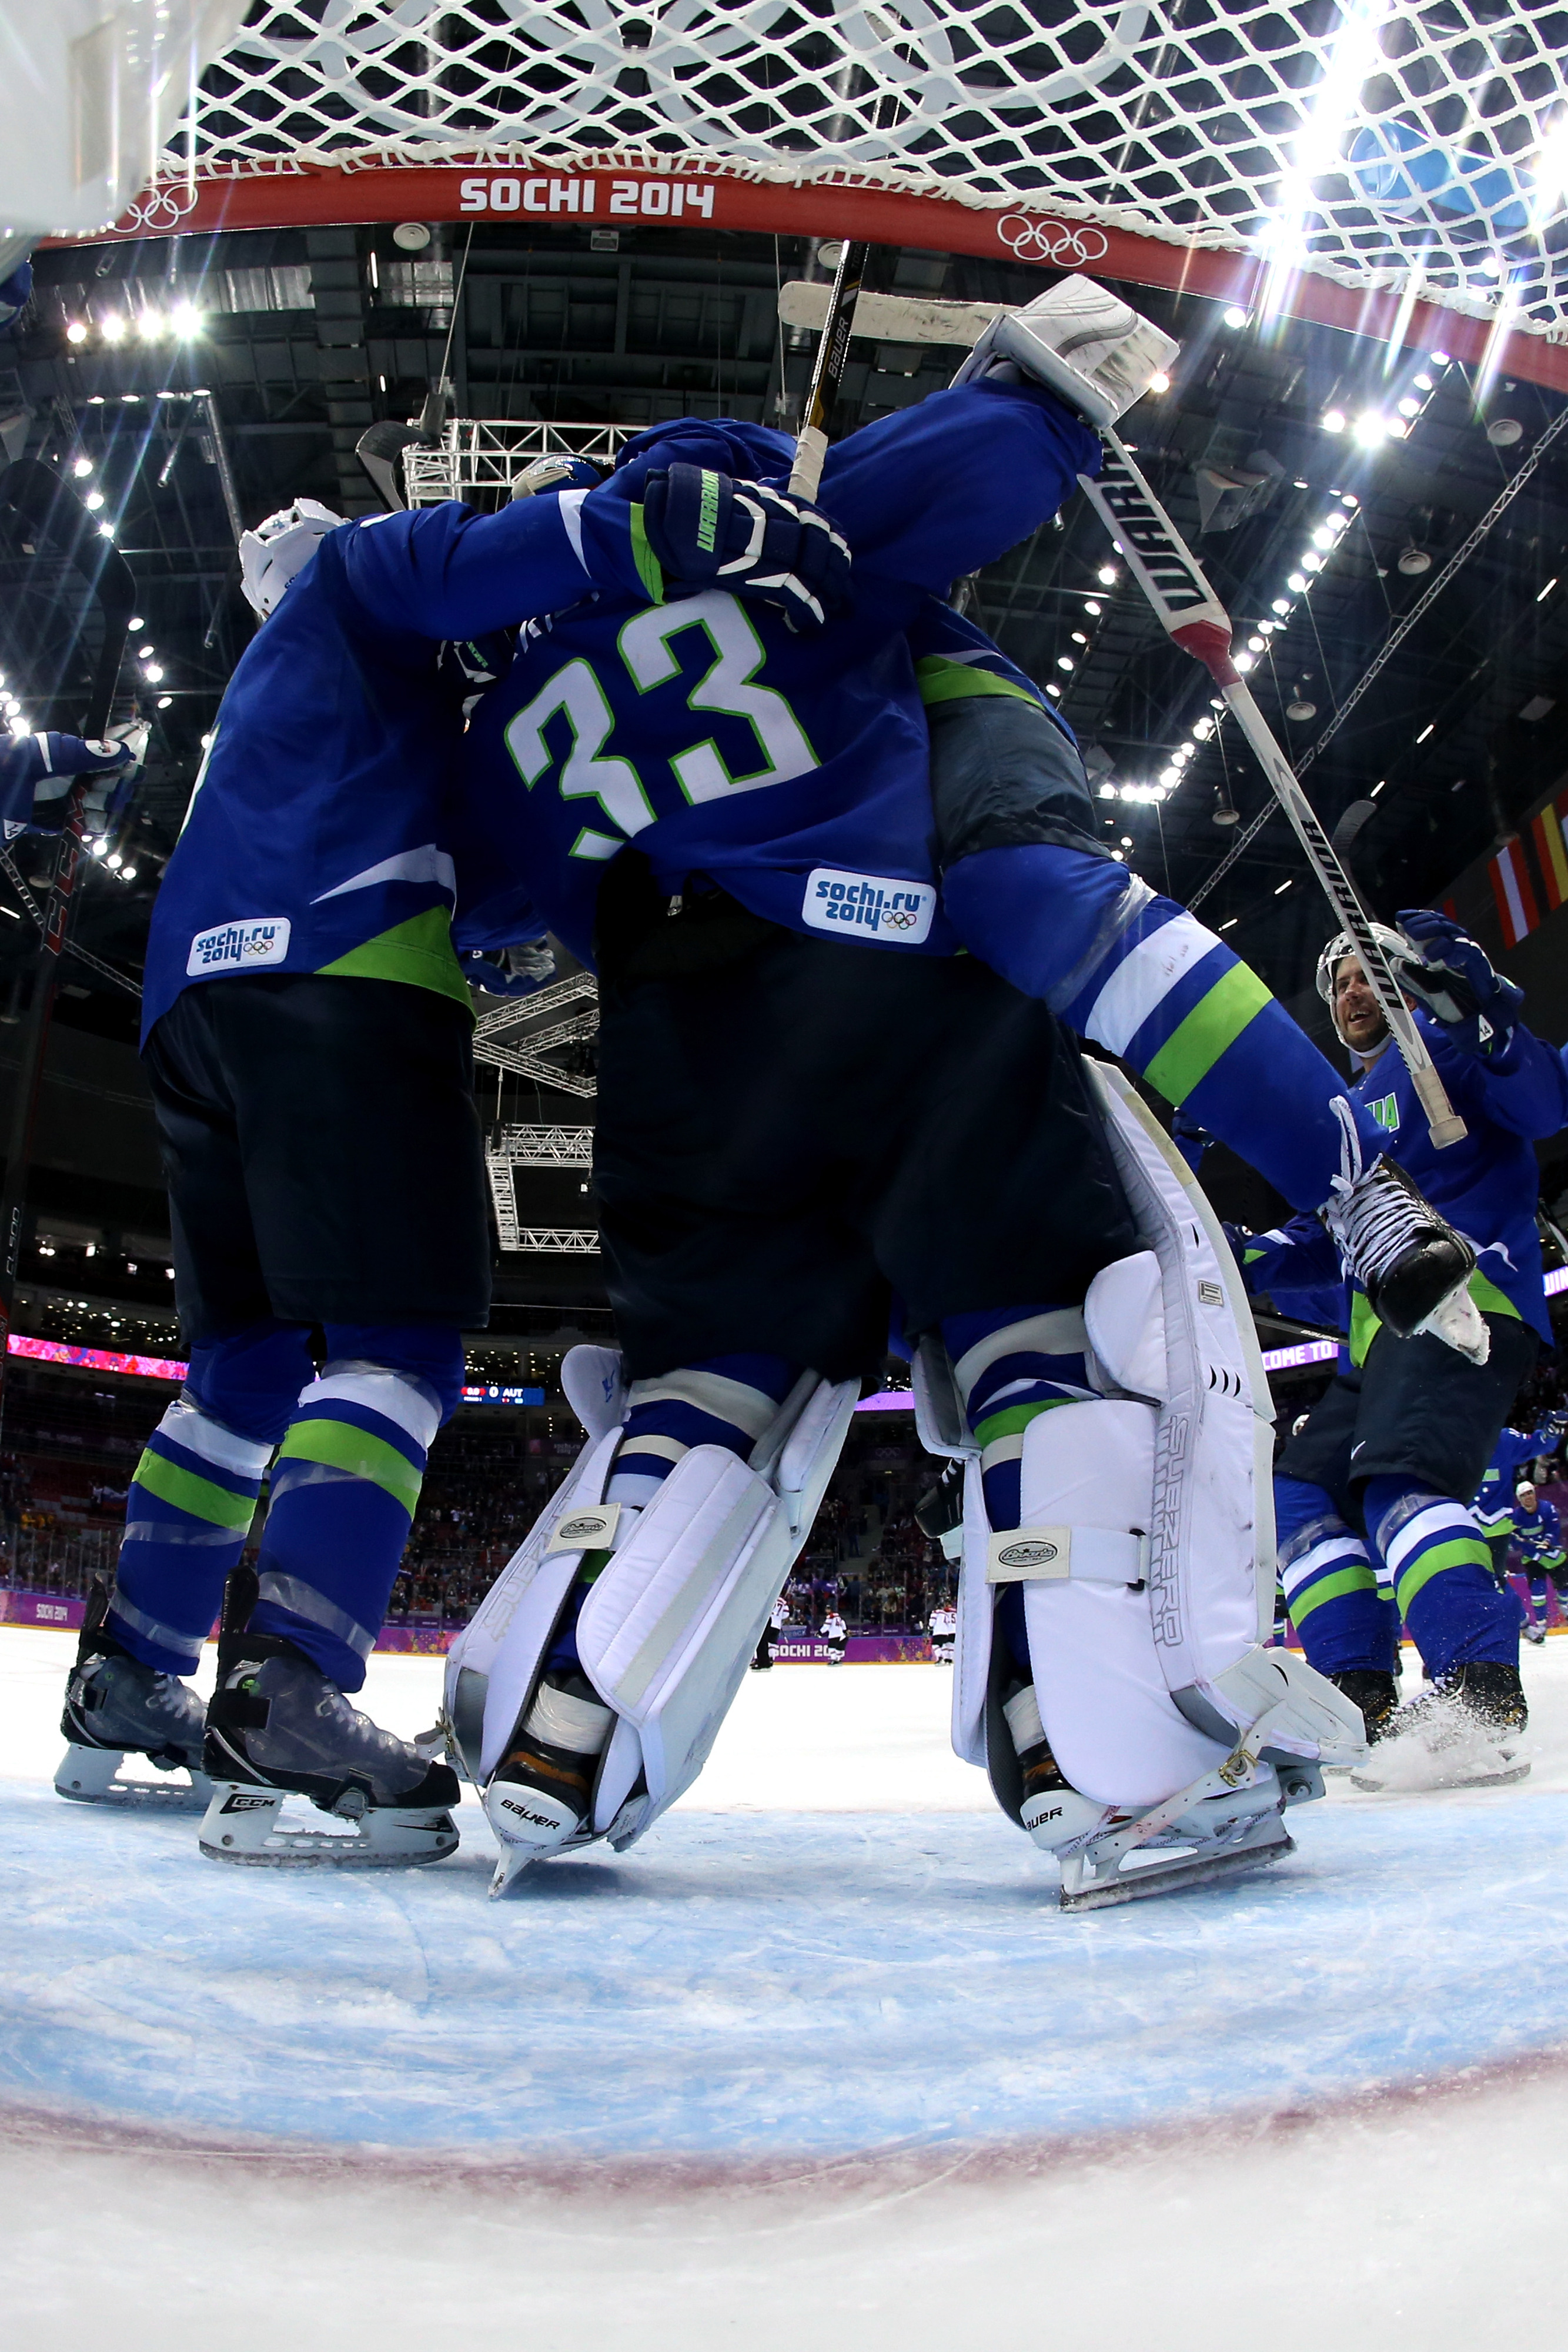 Slovenia's amazing run continues to the quarterfinals.